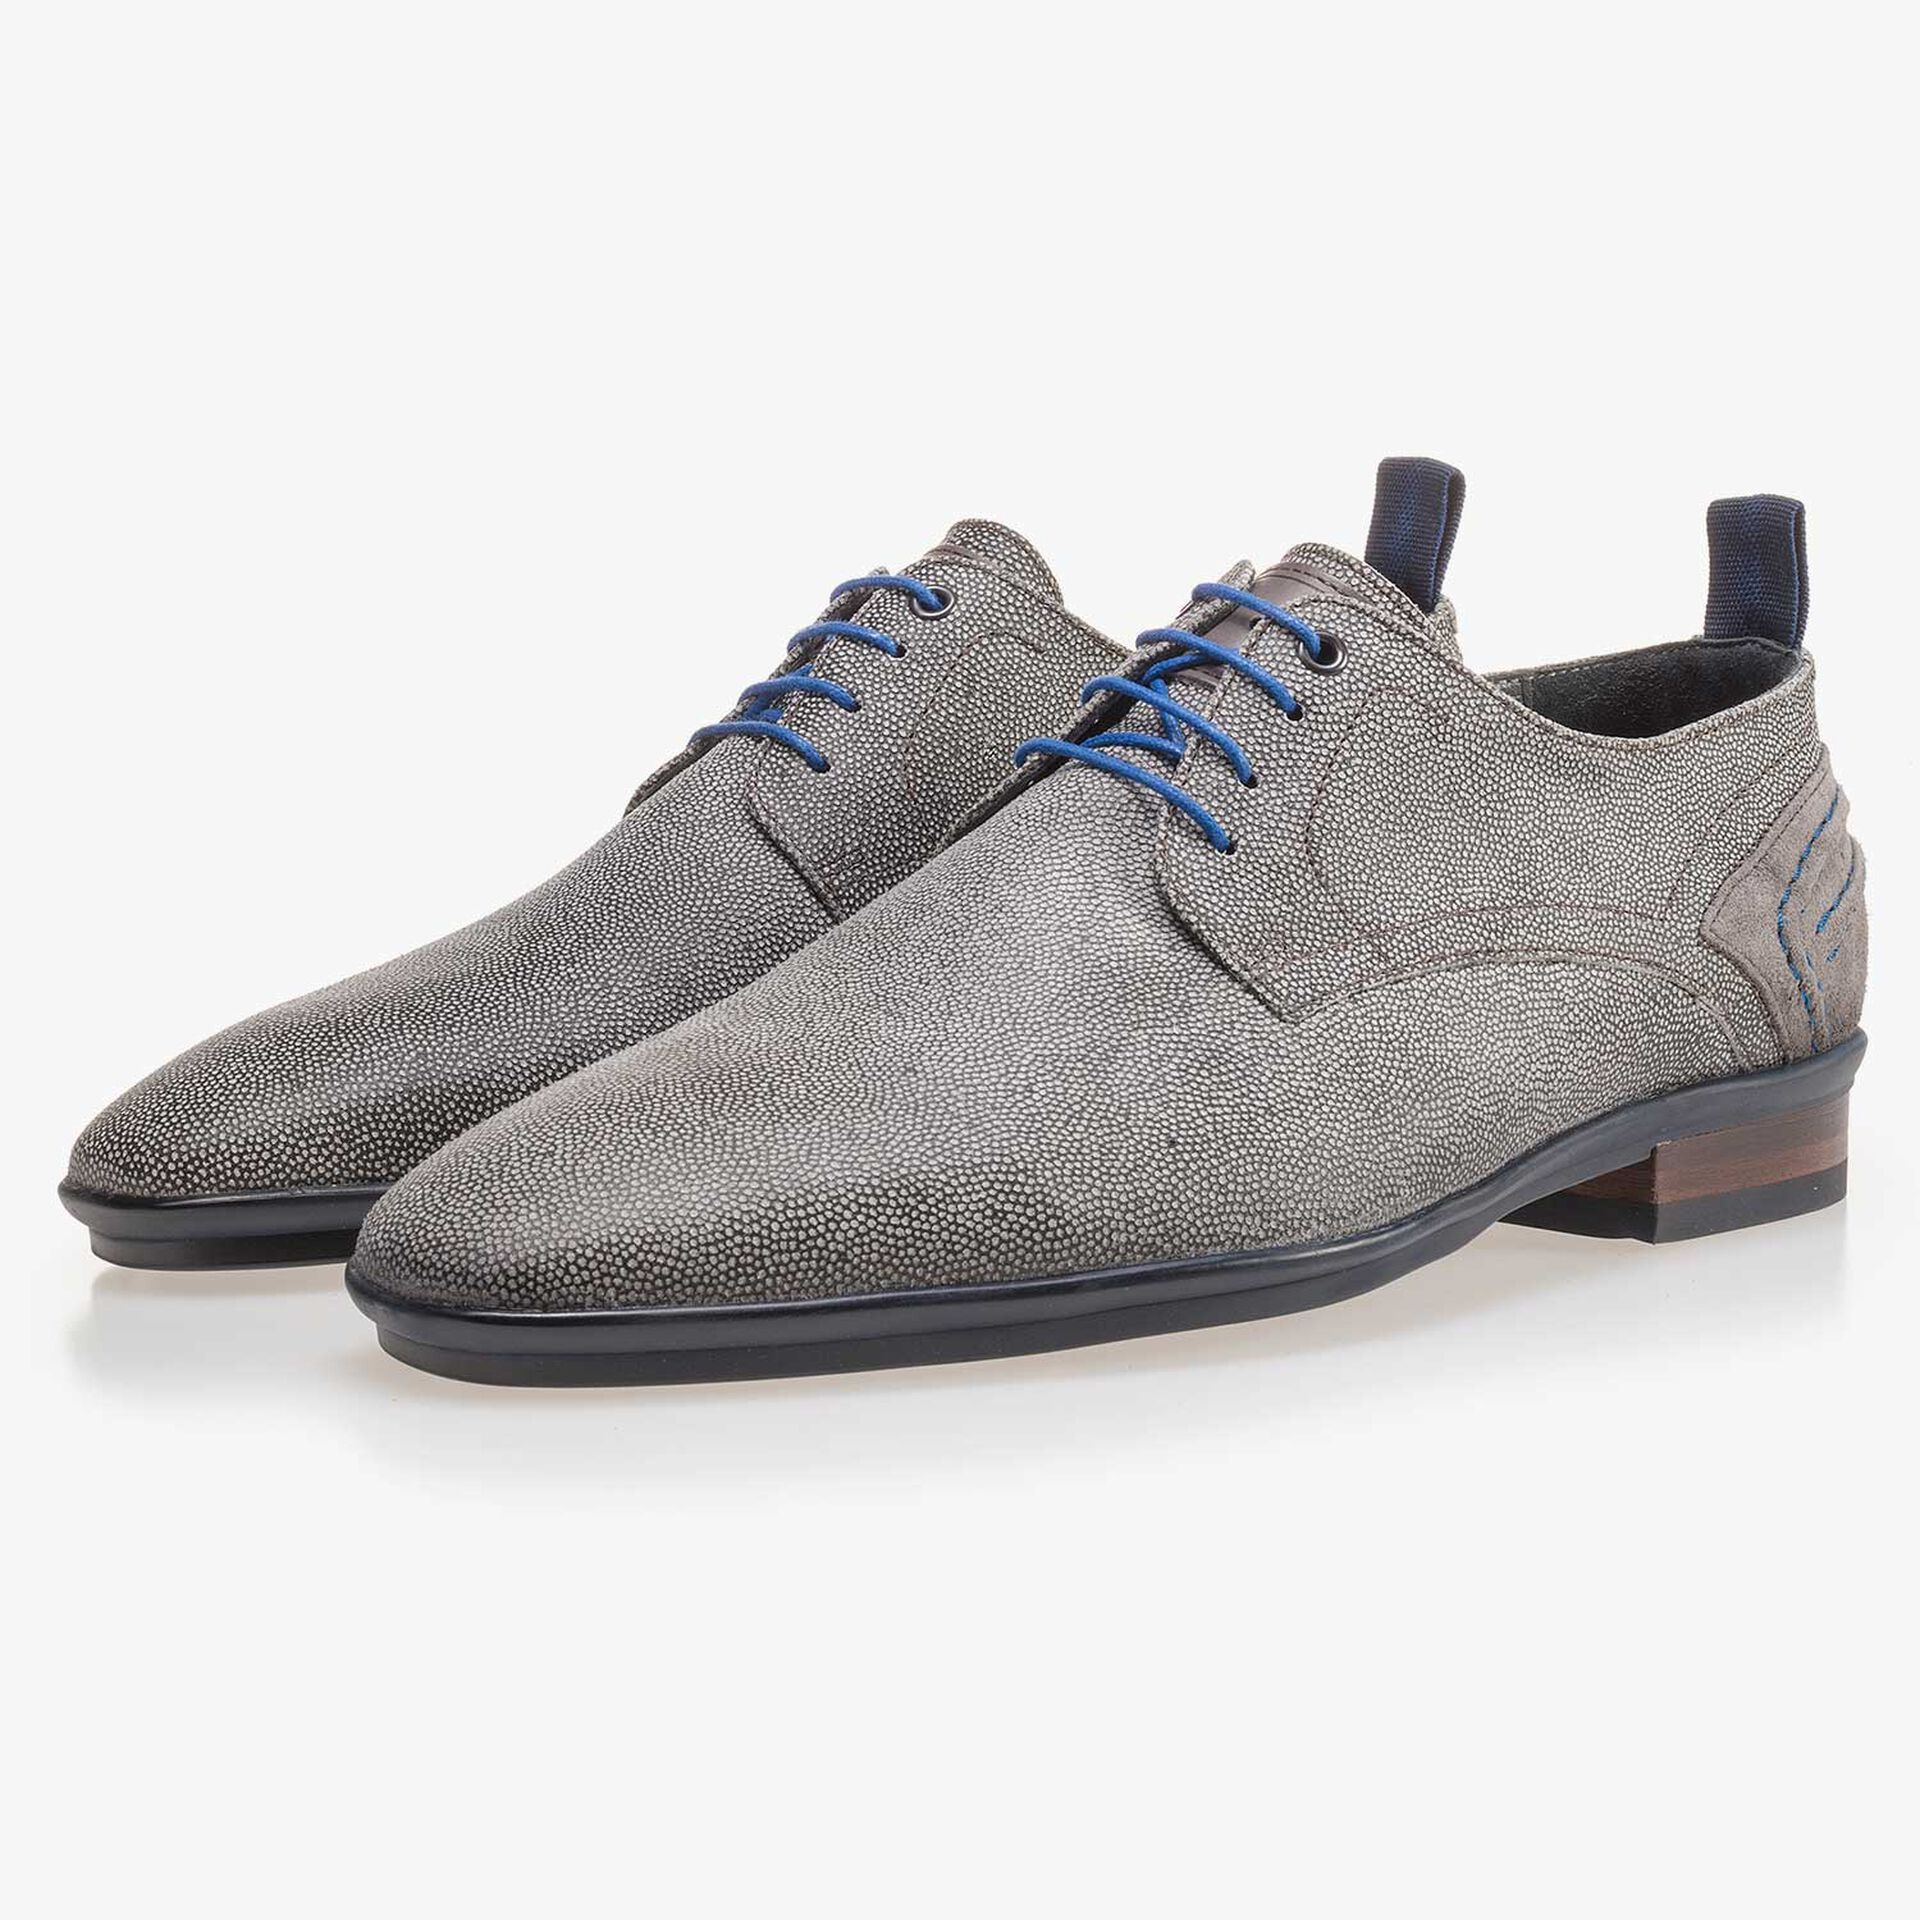 Grey, suede leather lace shoe with pattern